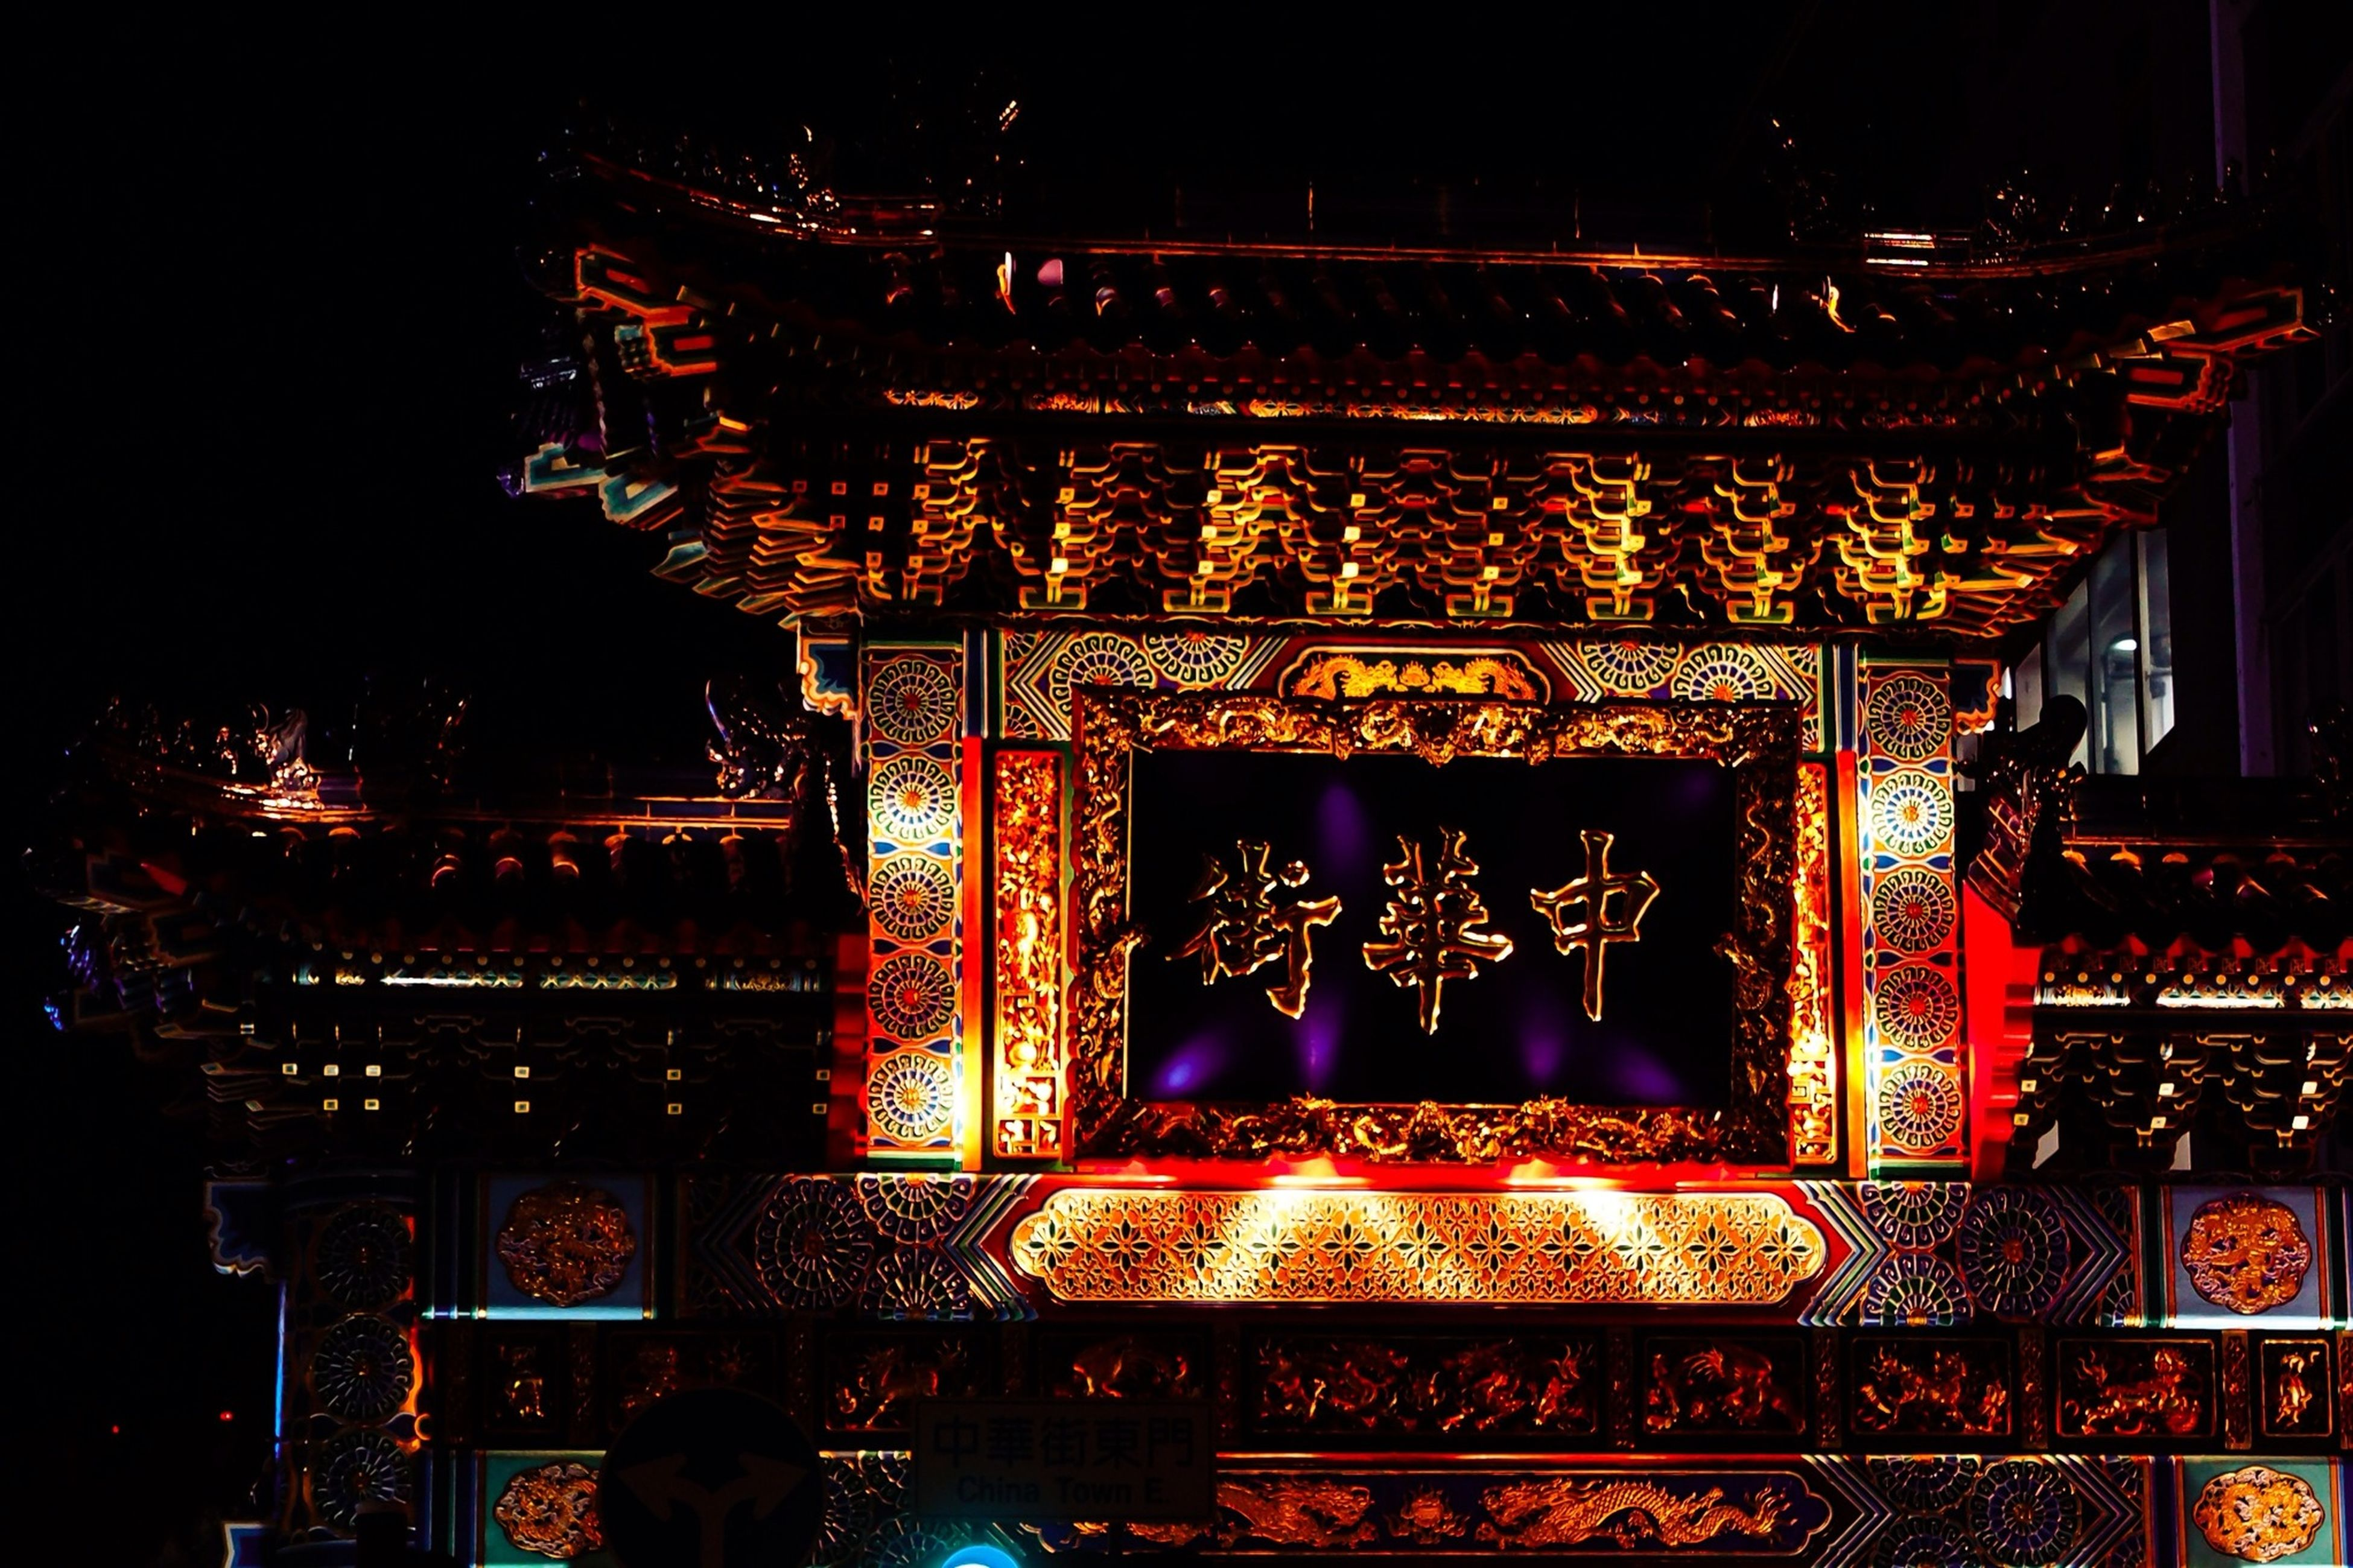 religion, illuminated, place of worship, architecture, spirituality, built structure, night, ornate, temple - building, cultures, low angle view, tradition, decoration, famous place, travel destinations, indoors, building exterior, church